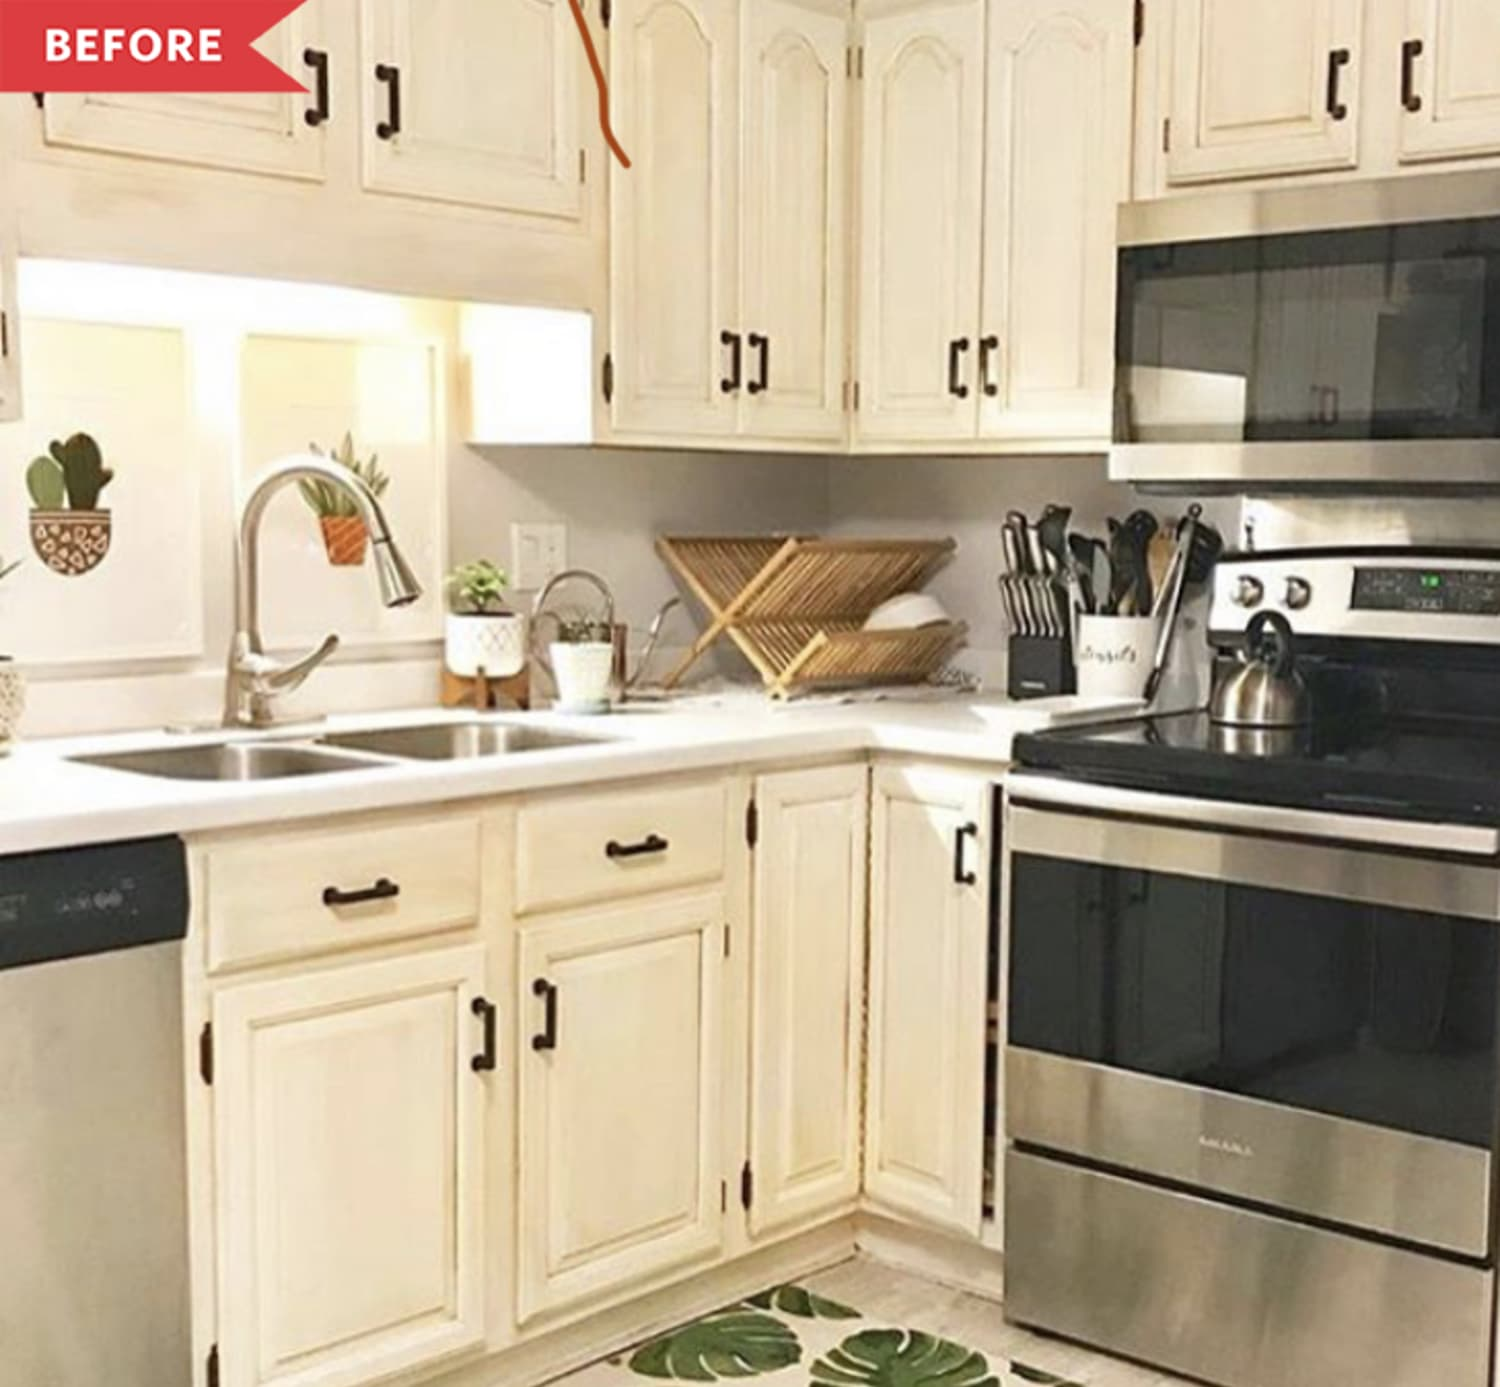 Before and After: The $500 Kitchen Refresh of Your Scandi-Modern Dreams